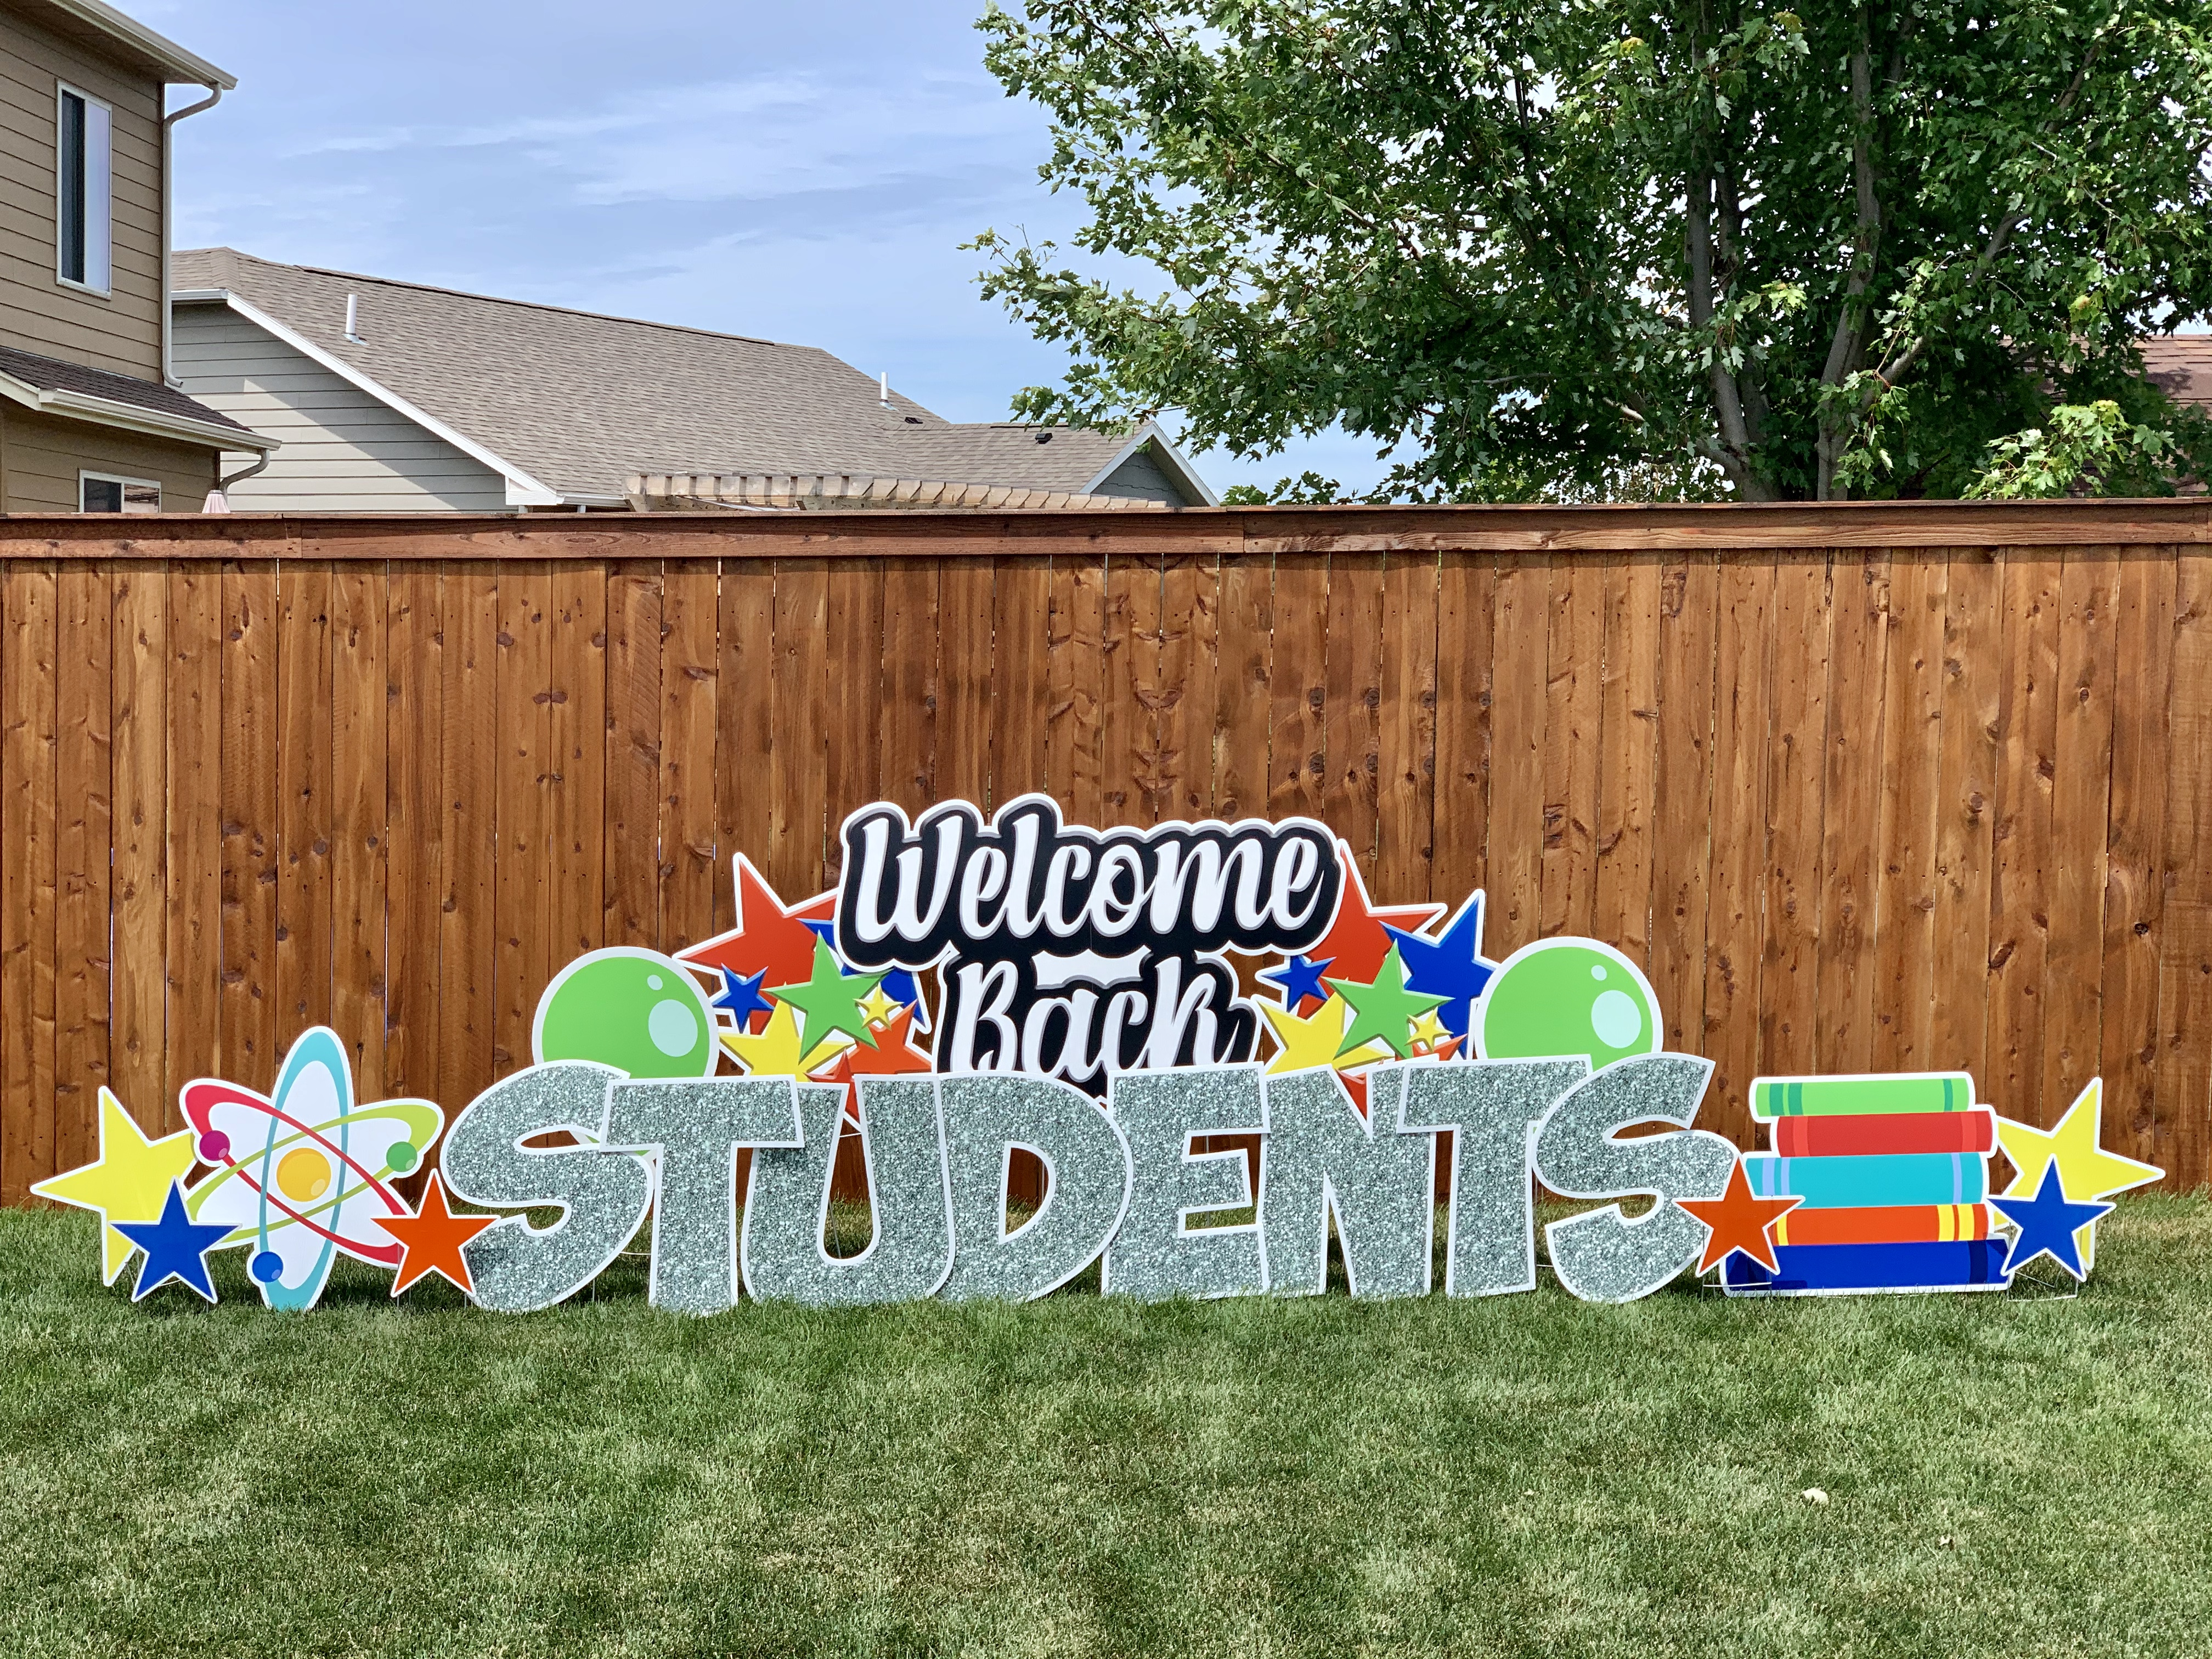 Welcome Back Students Yard Sign